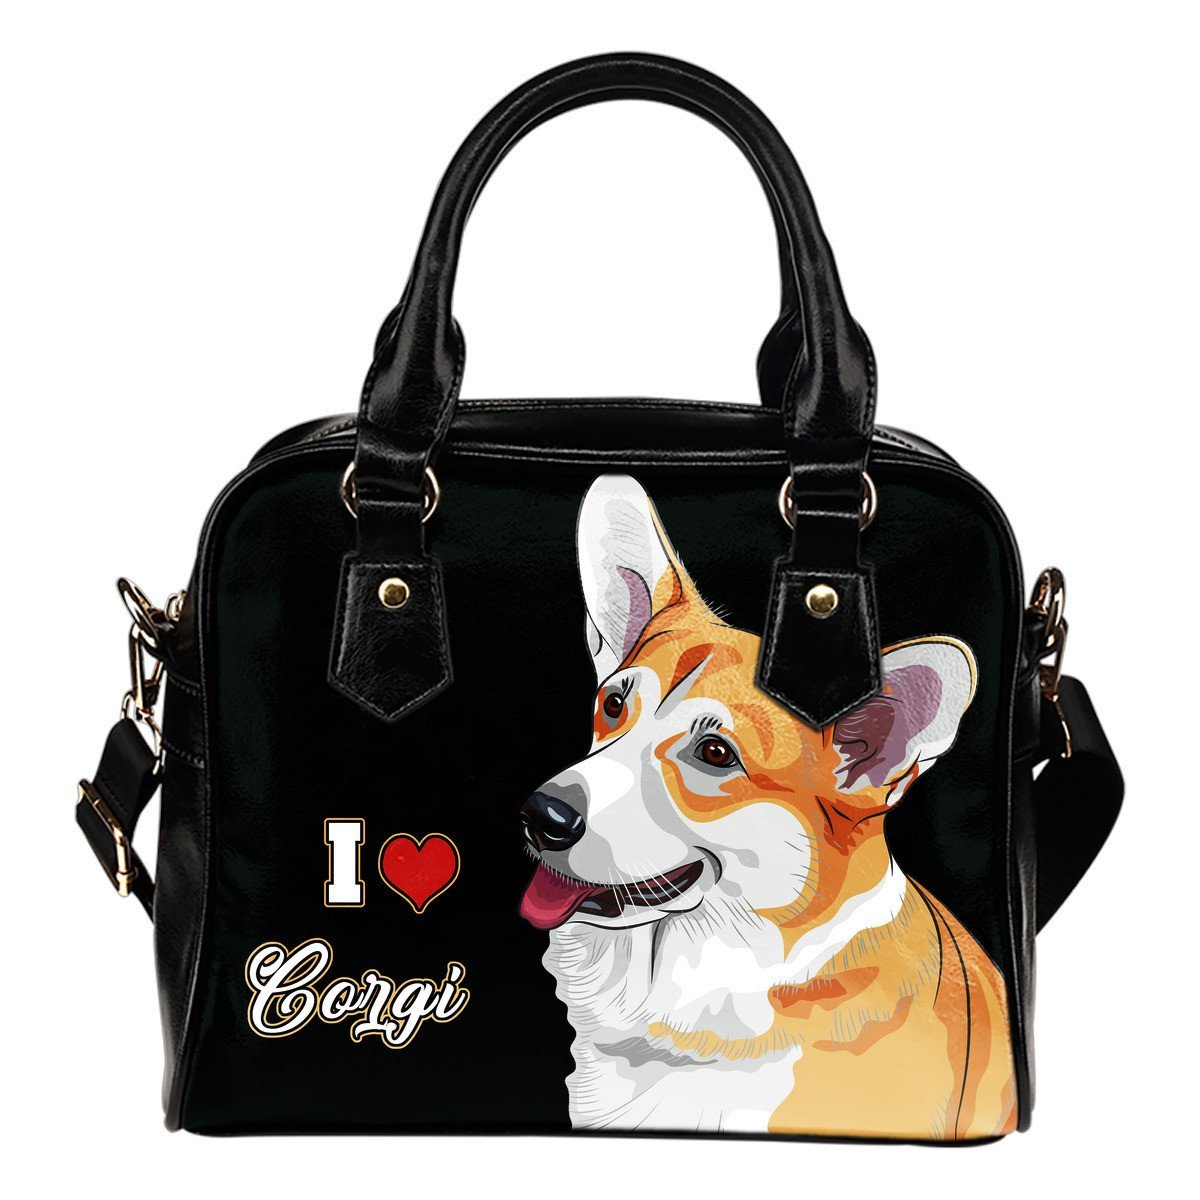 Corgi Shoulder Bag -  Shoulder Bag - EZ9 STORE